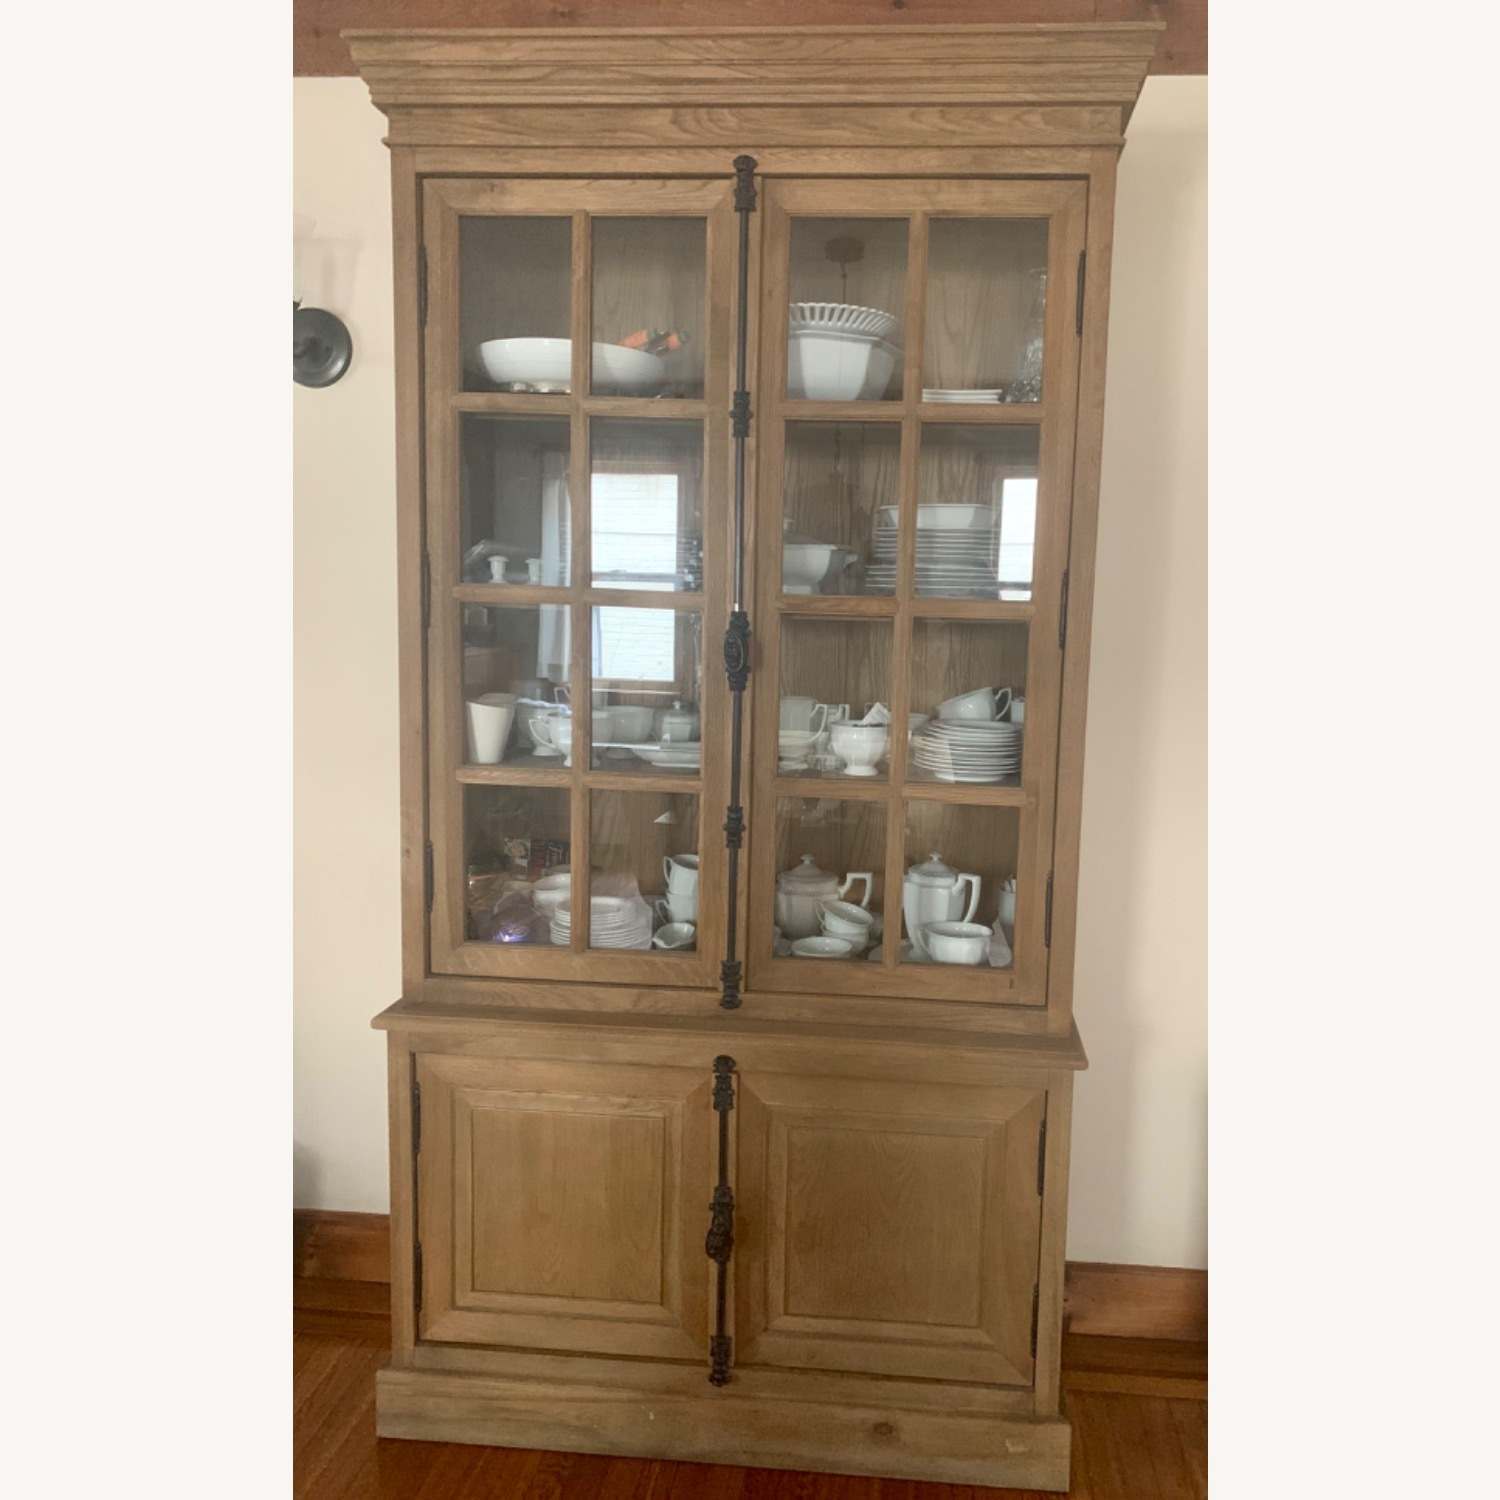 Restoration Hardware Oak French Cabinet - image-1